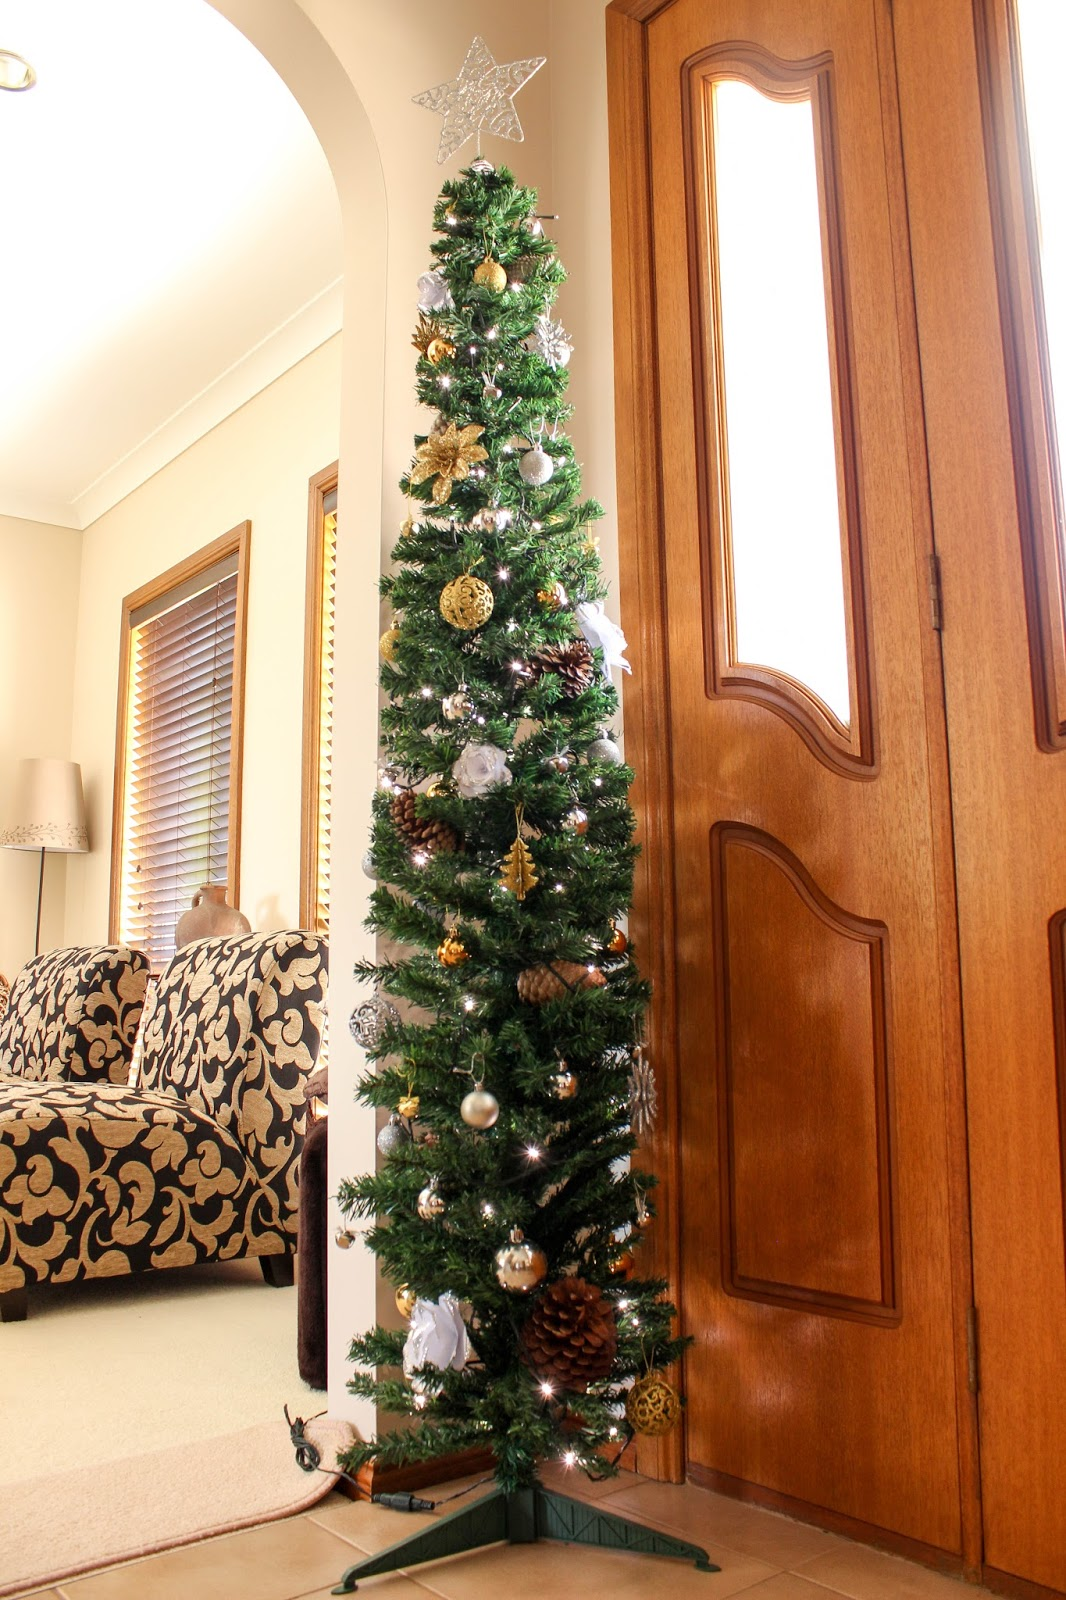 This Year We Decided One Christmas Tree Just Wasnu0027t Going To Be Enough. So  We Picked Up This Cute 180cm Pencil Tree From The Reject Shop For $25 For  The ...